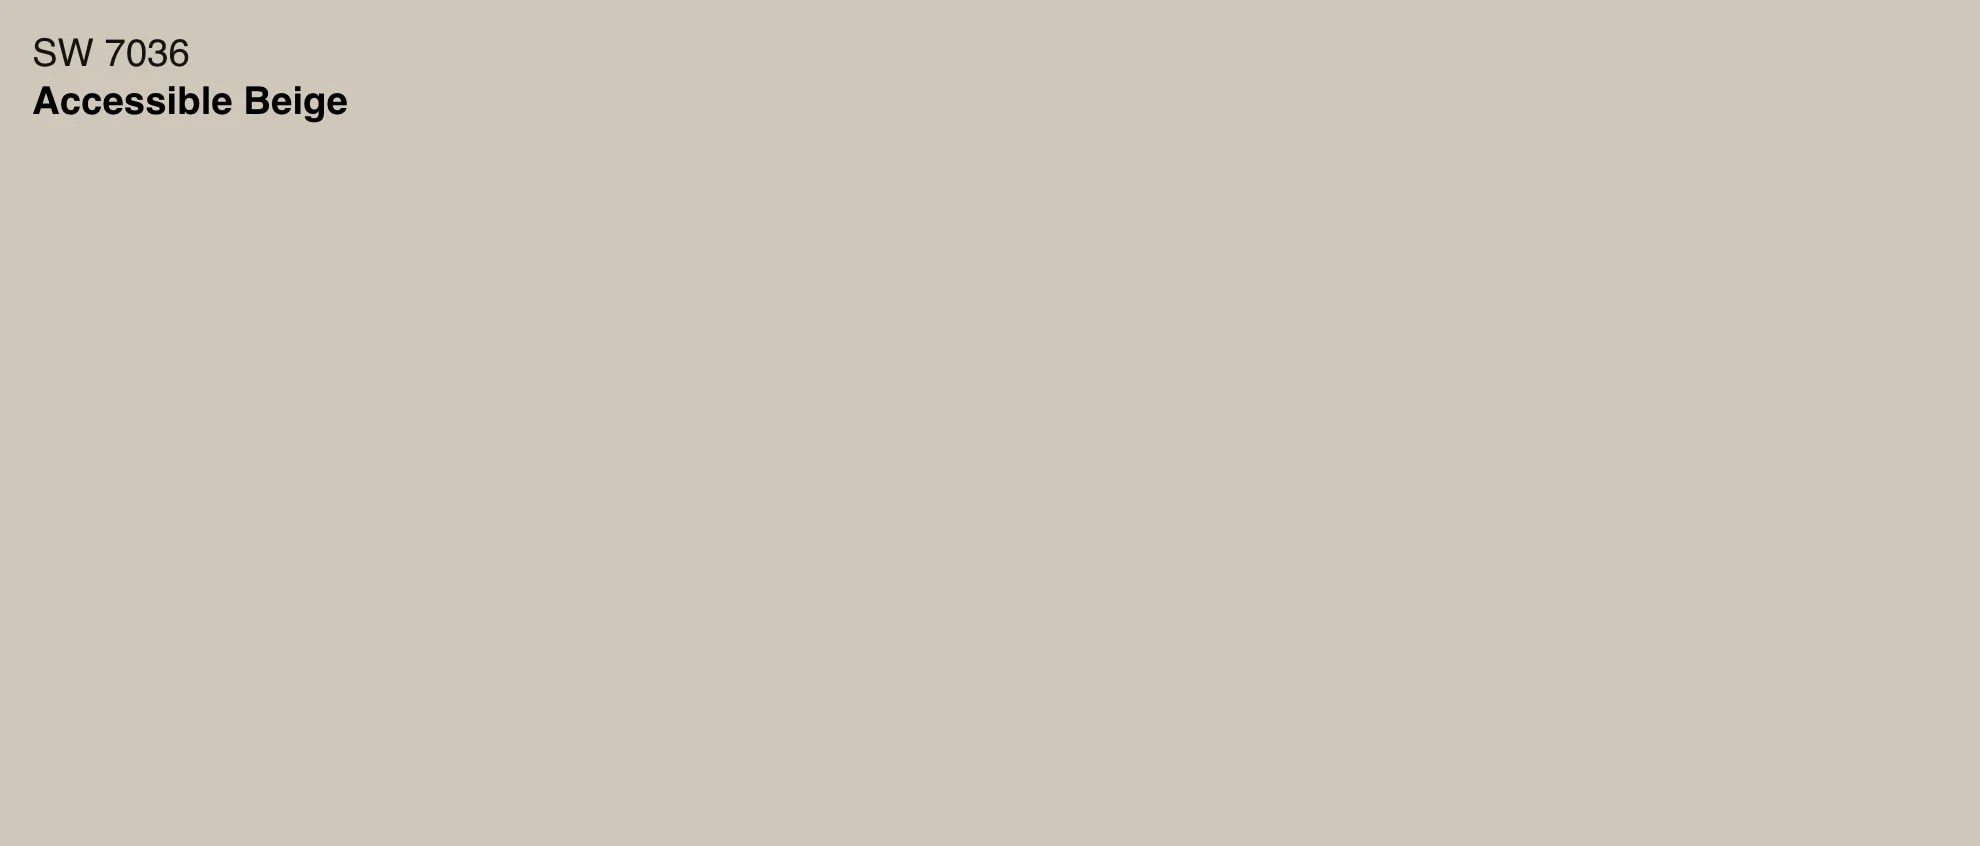 sherwin williams accessible beige swatch